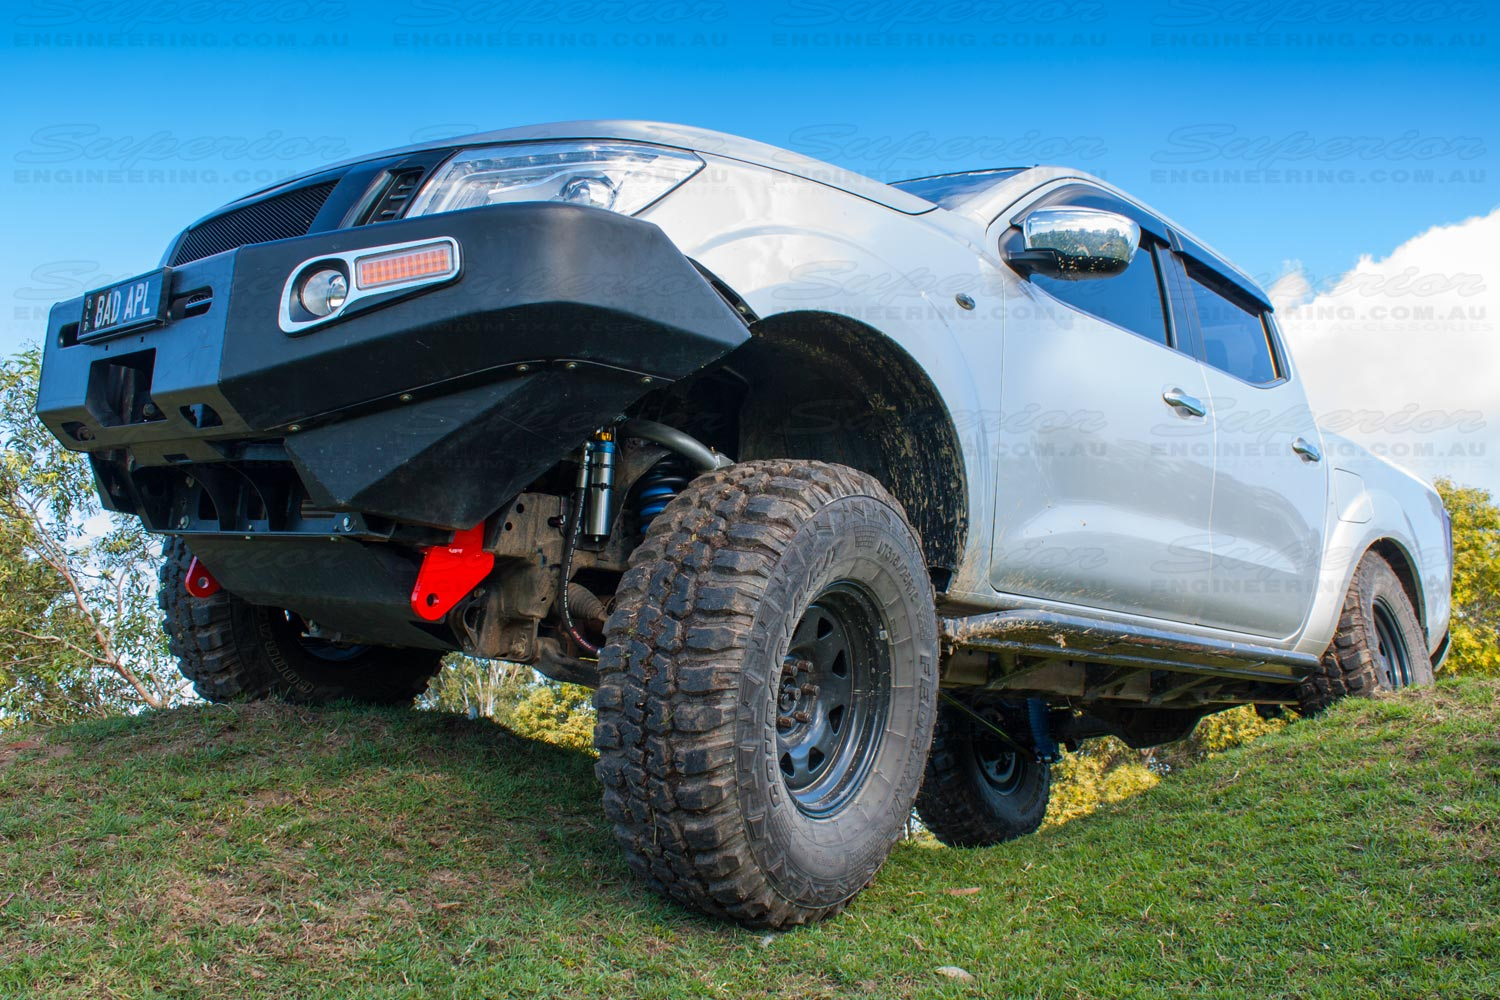 towing-point-nissan-np300-7 | 4x4 Accessories Online